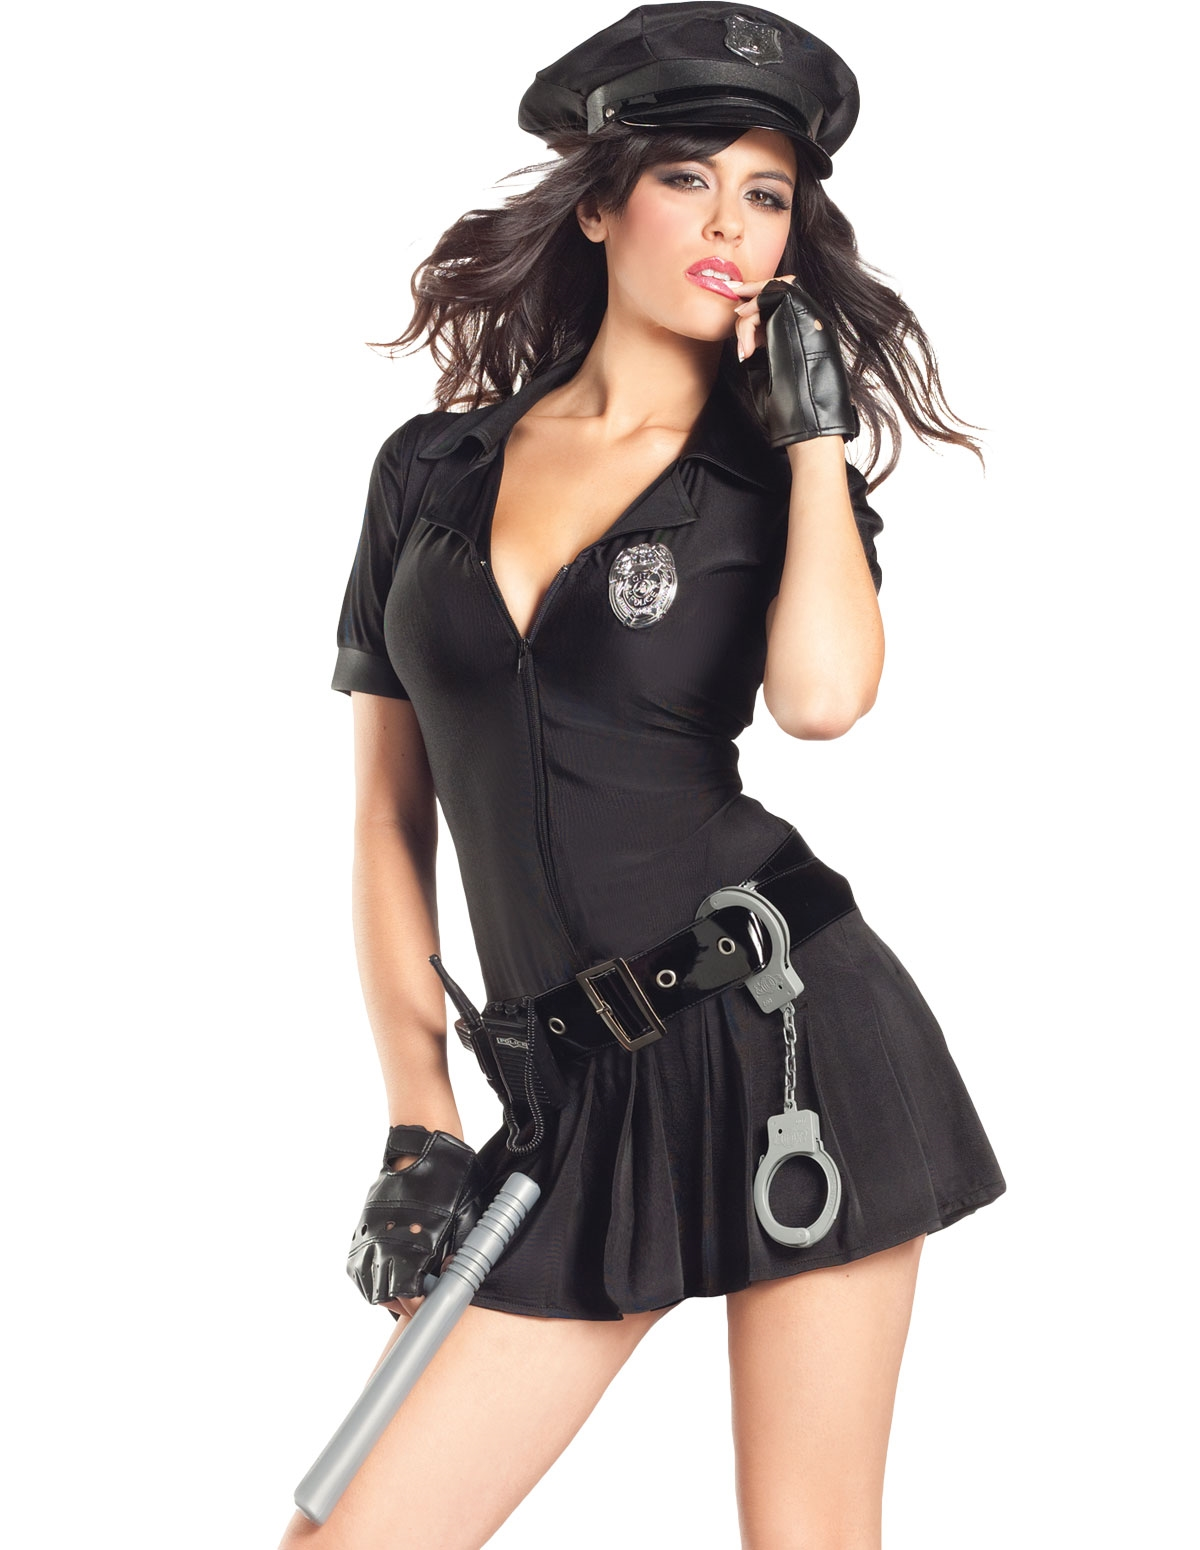 Mrs. Law Cop Costume